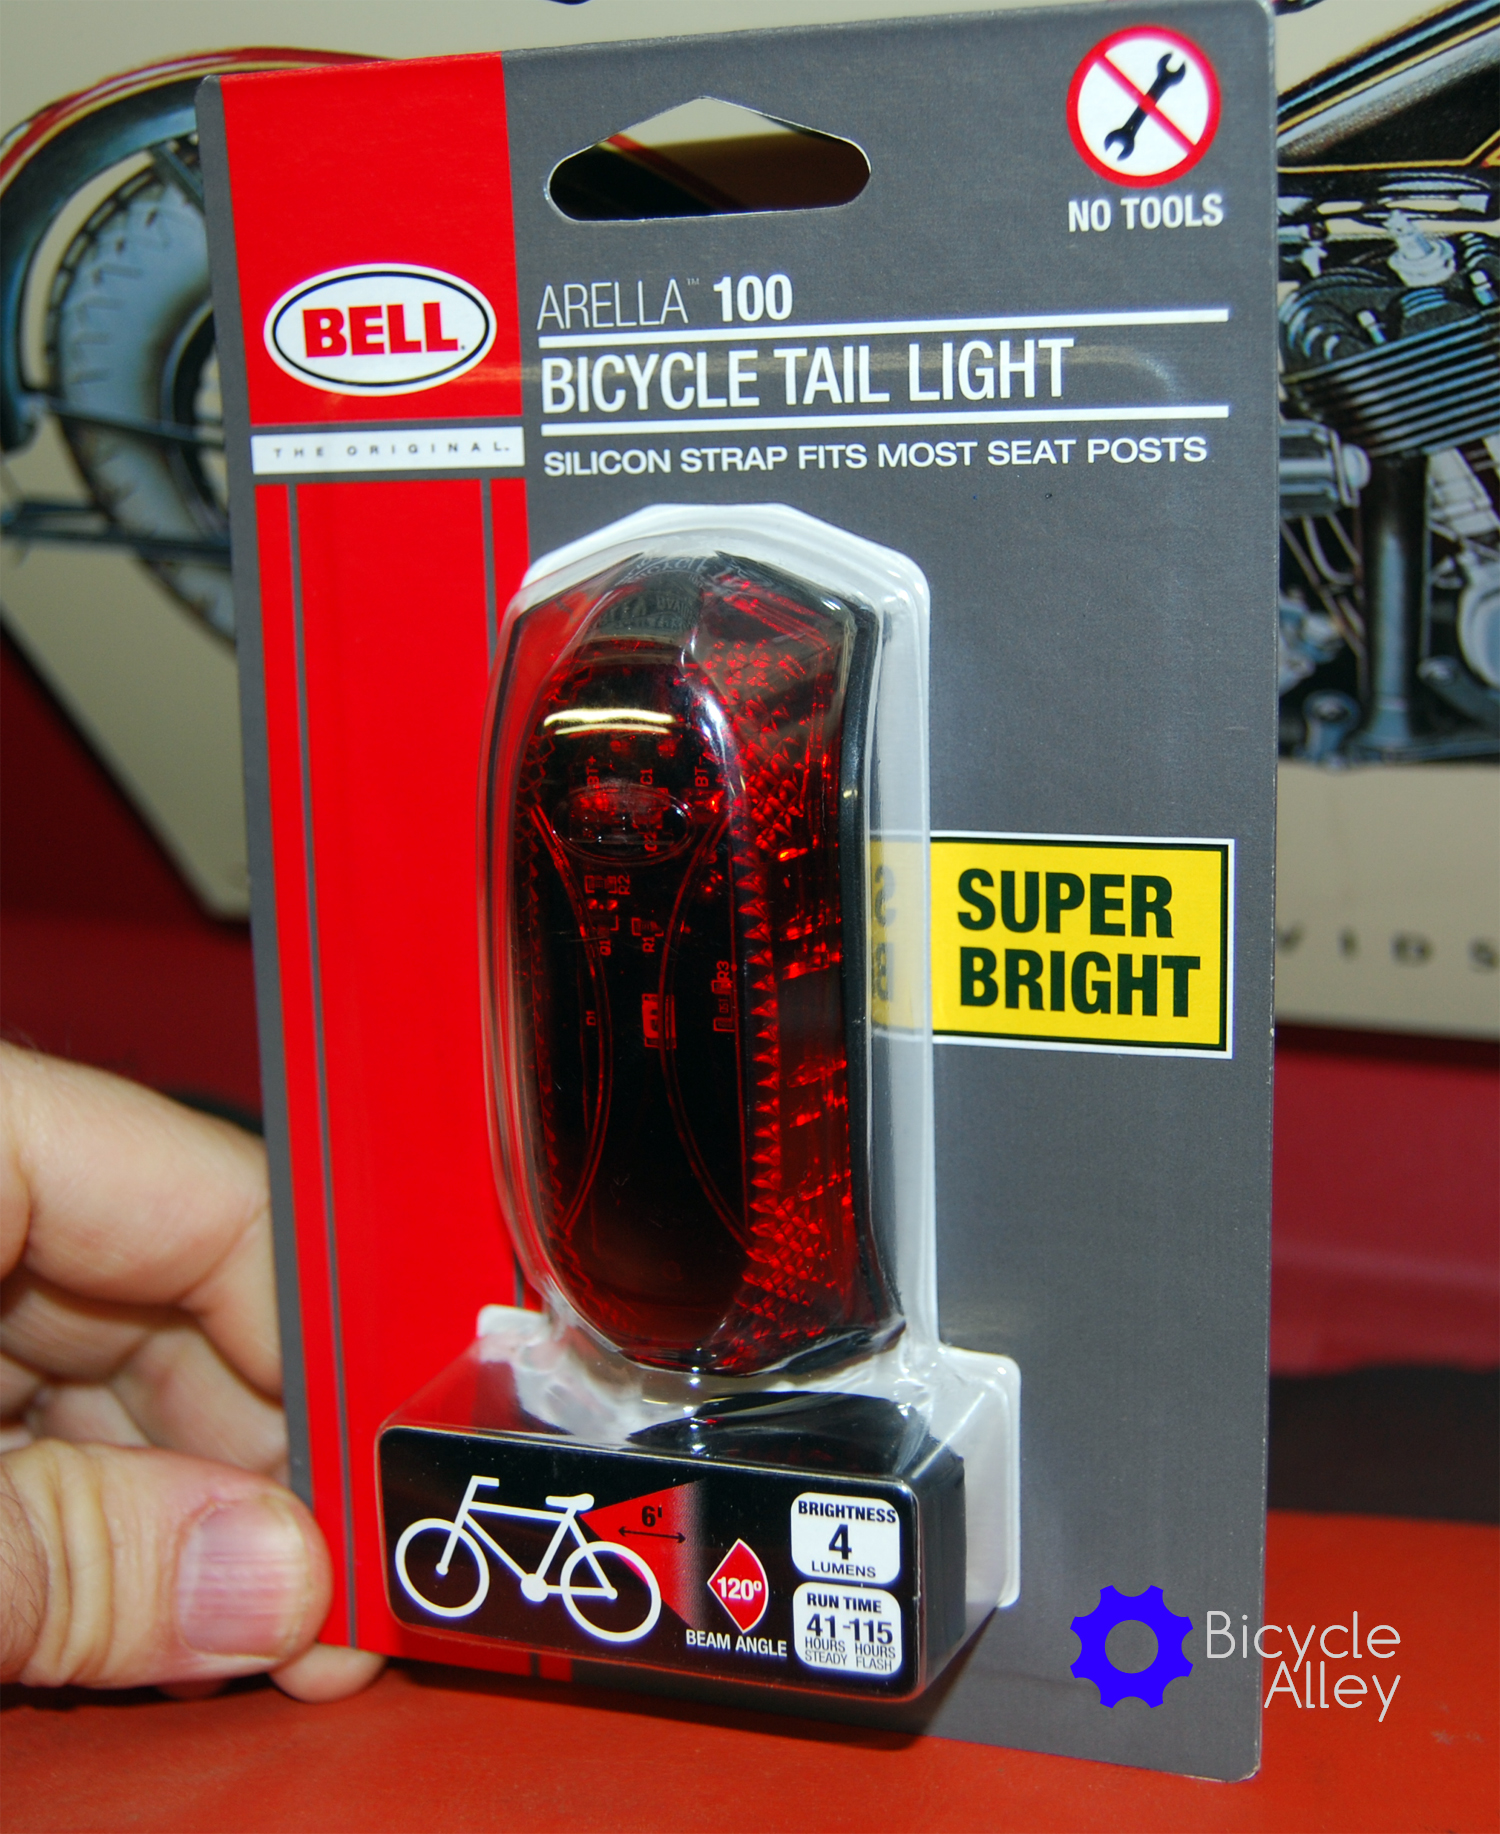 Bell Arella 100 Bicycle Tail Light Bicycle Alley